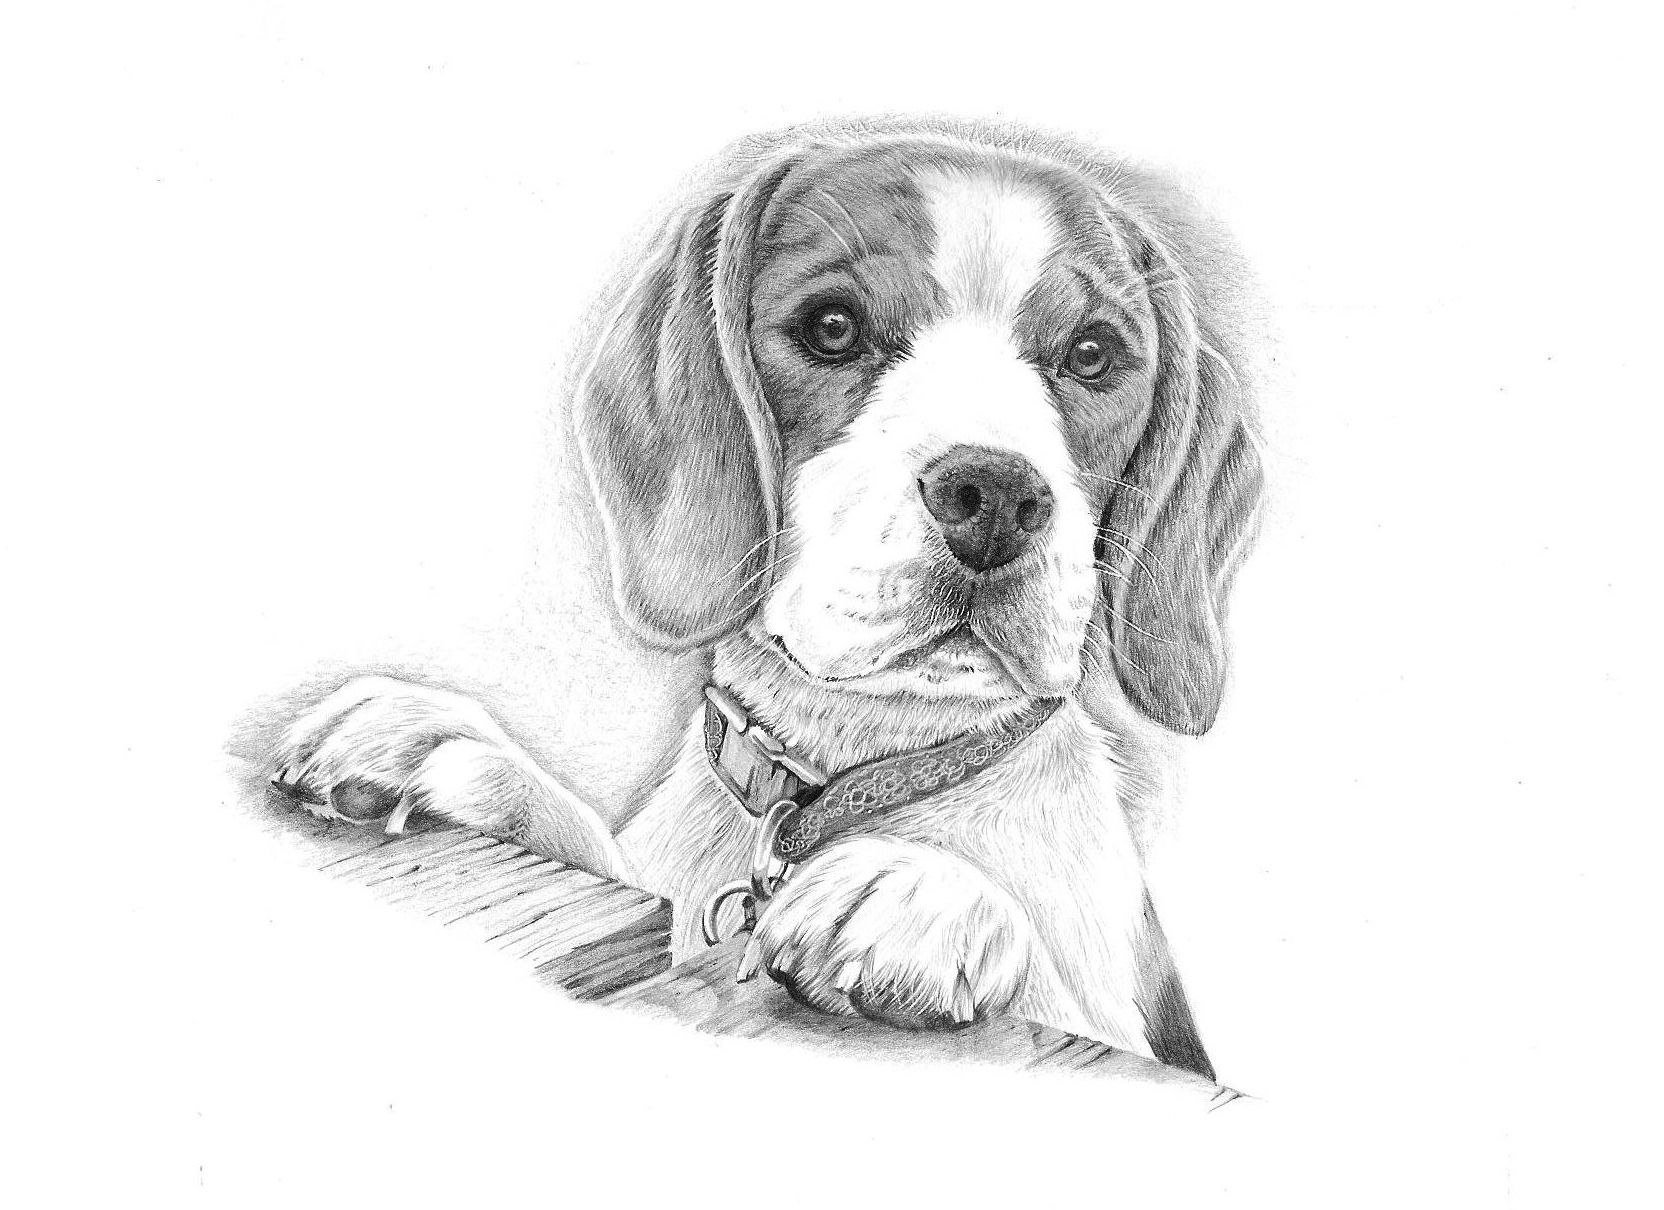 beagle drawing beagle on the hunt drawing by rob christensen drawing beagle